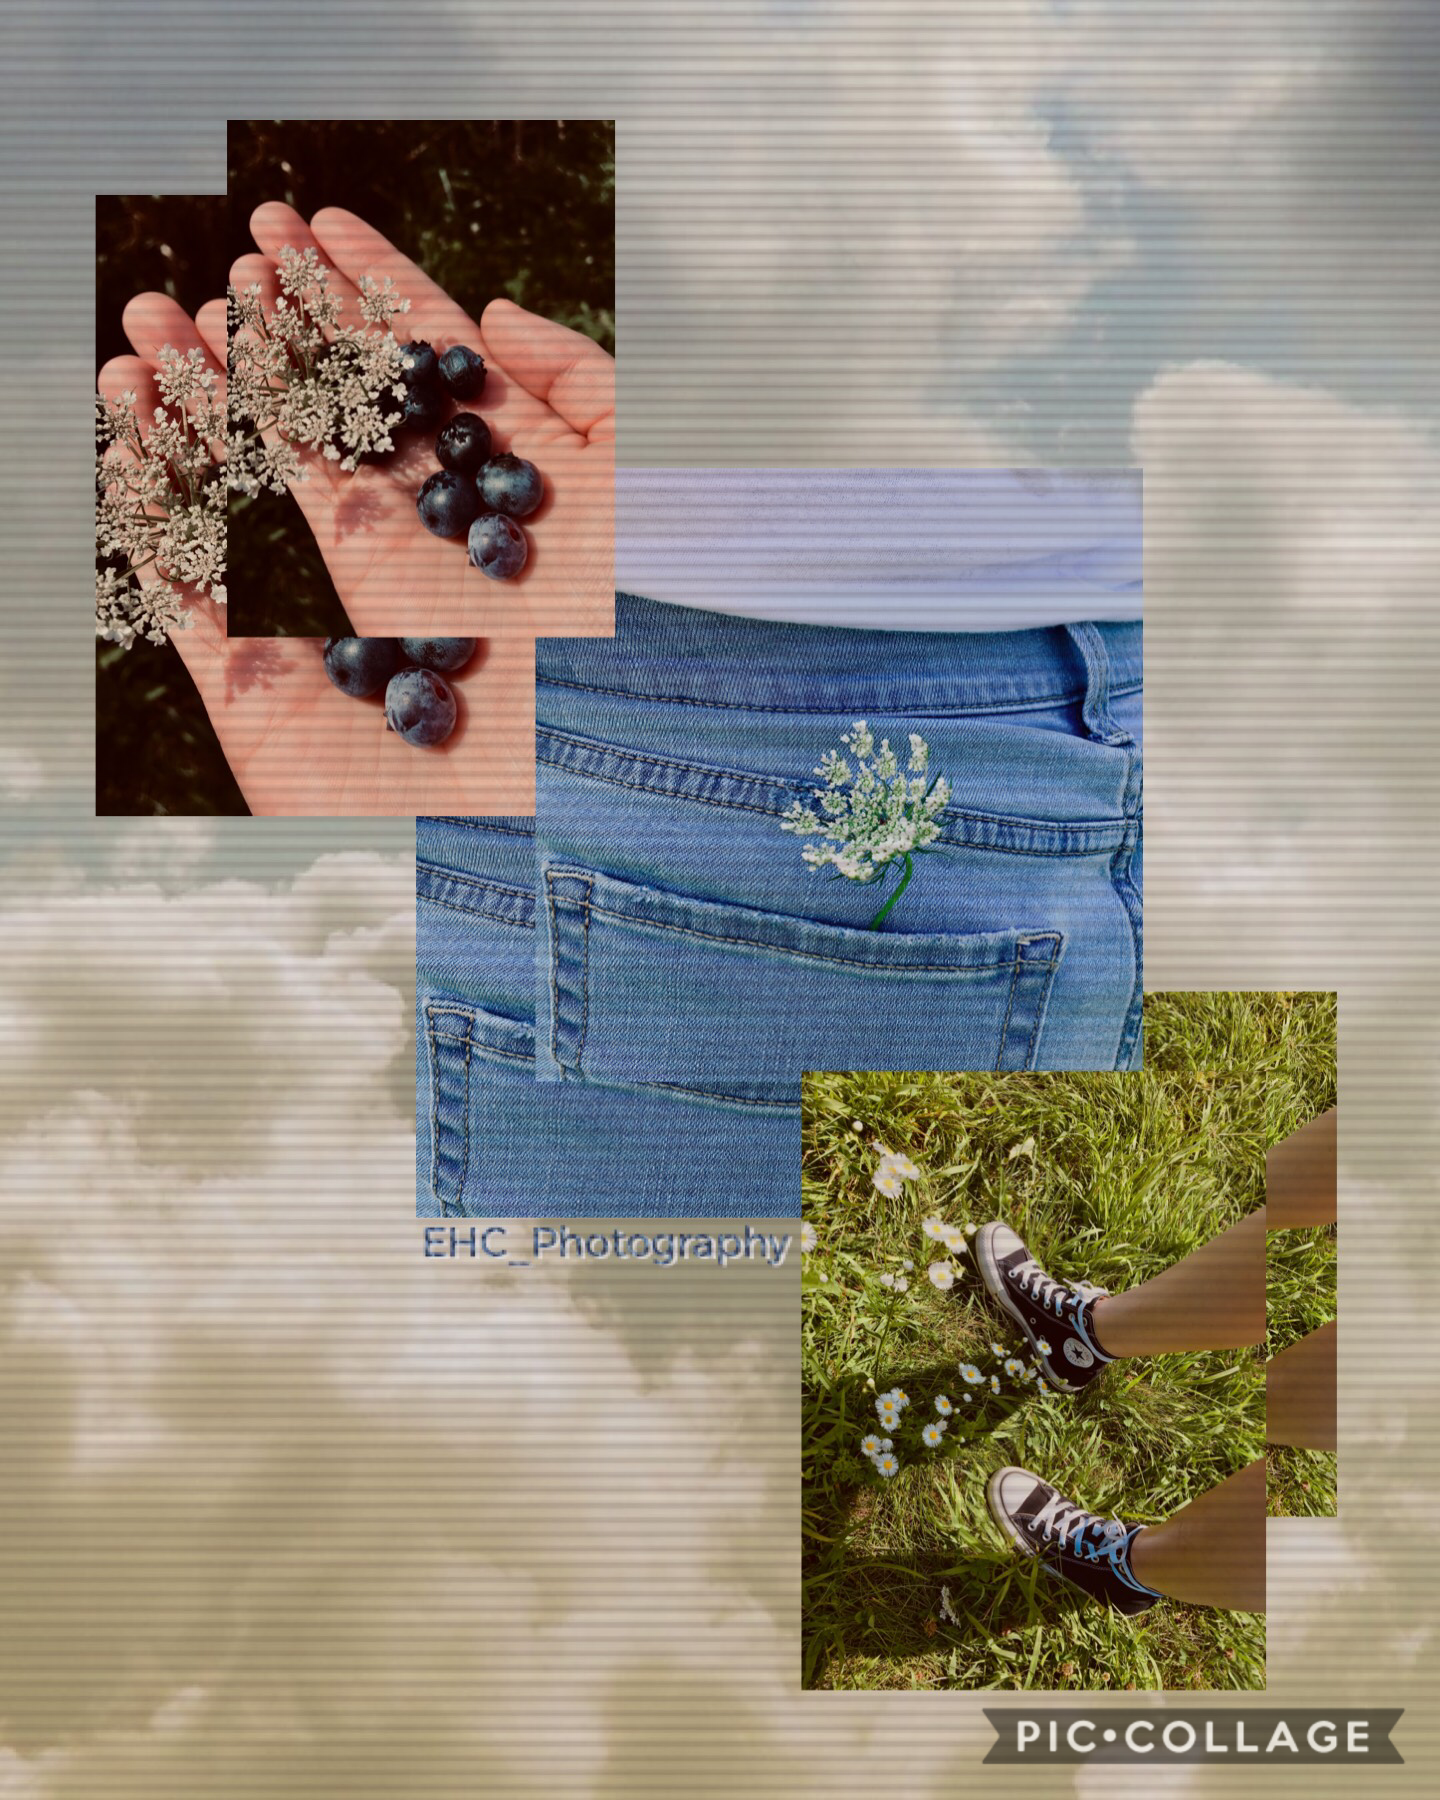 [ 🌼 🍃 🖤 I took these recently when I went blueberry picking. ☁️ 📸 👖 ] It's been forever since I've posted, and caught up as well... 😬 How've you guys been??? 🙃 I've been alright and busy, but doing hardly anything at the same time if you get me. 🤙🏻